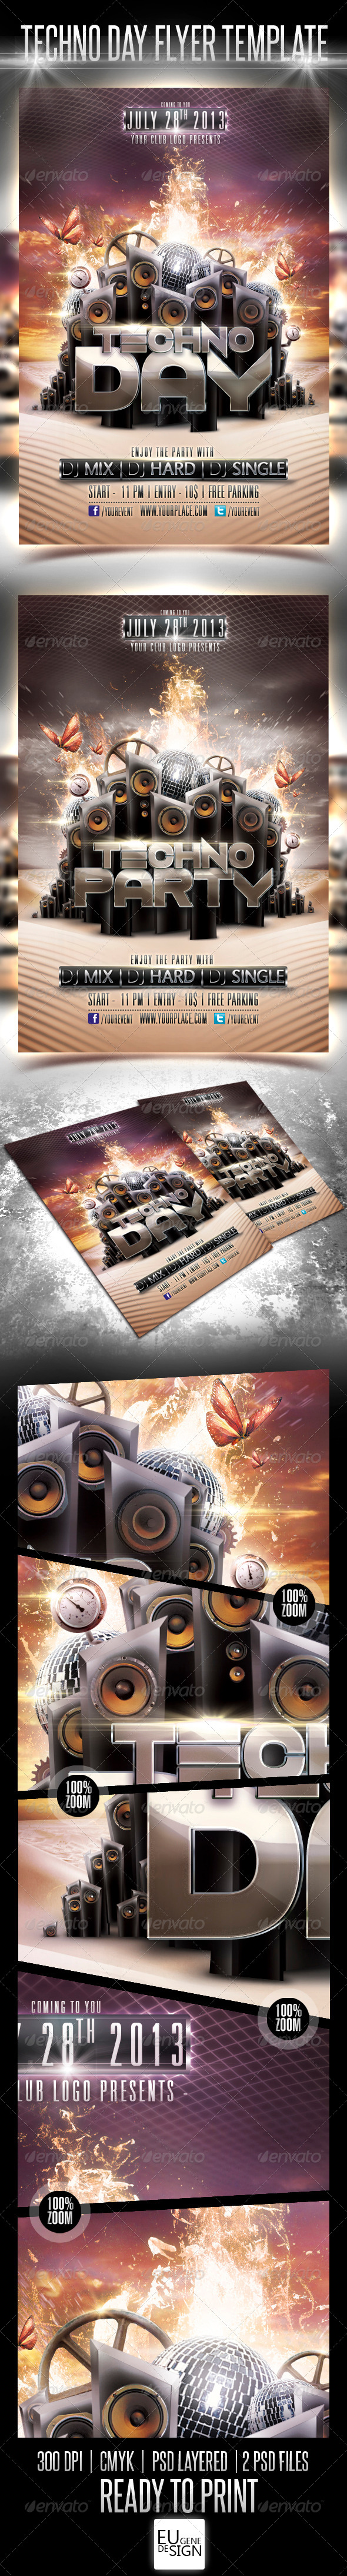 GraphicRiver Techno Day Flyer Template 5149141